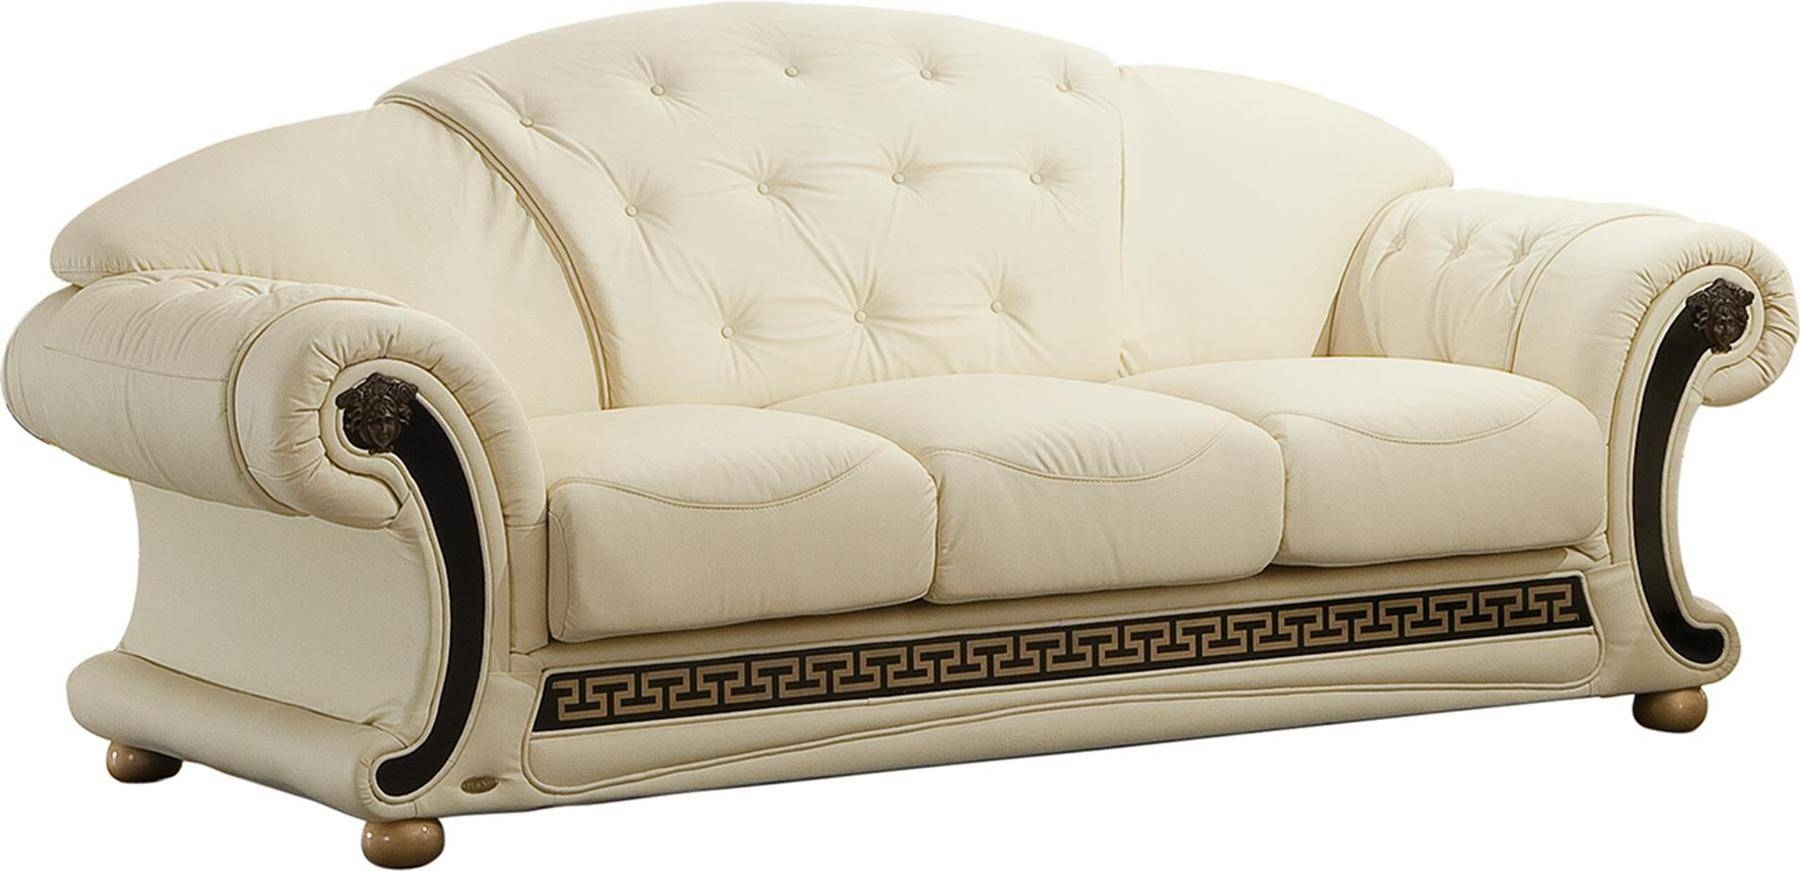 Versace Ivory Sofa Versace Esf Furniture Leather Sofas At Comfyco within Ivory Leather Sofas (Image 30 of 30)